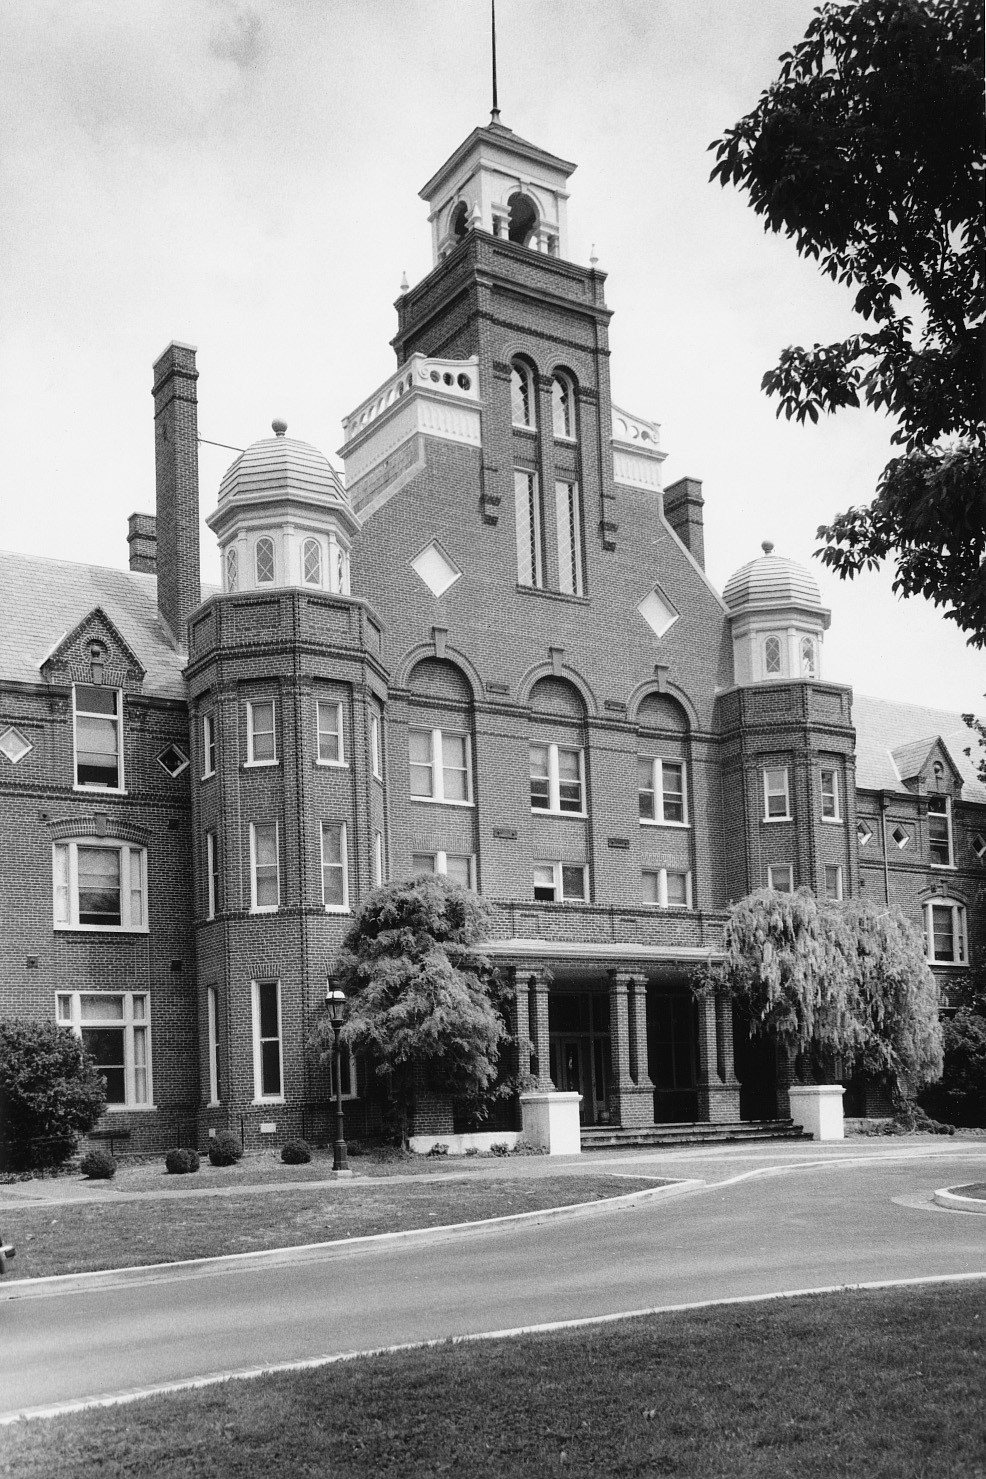 Randolph-Macon Woman's College Main Hall